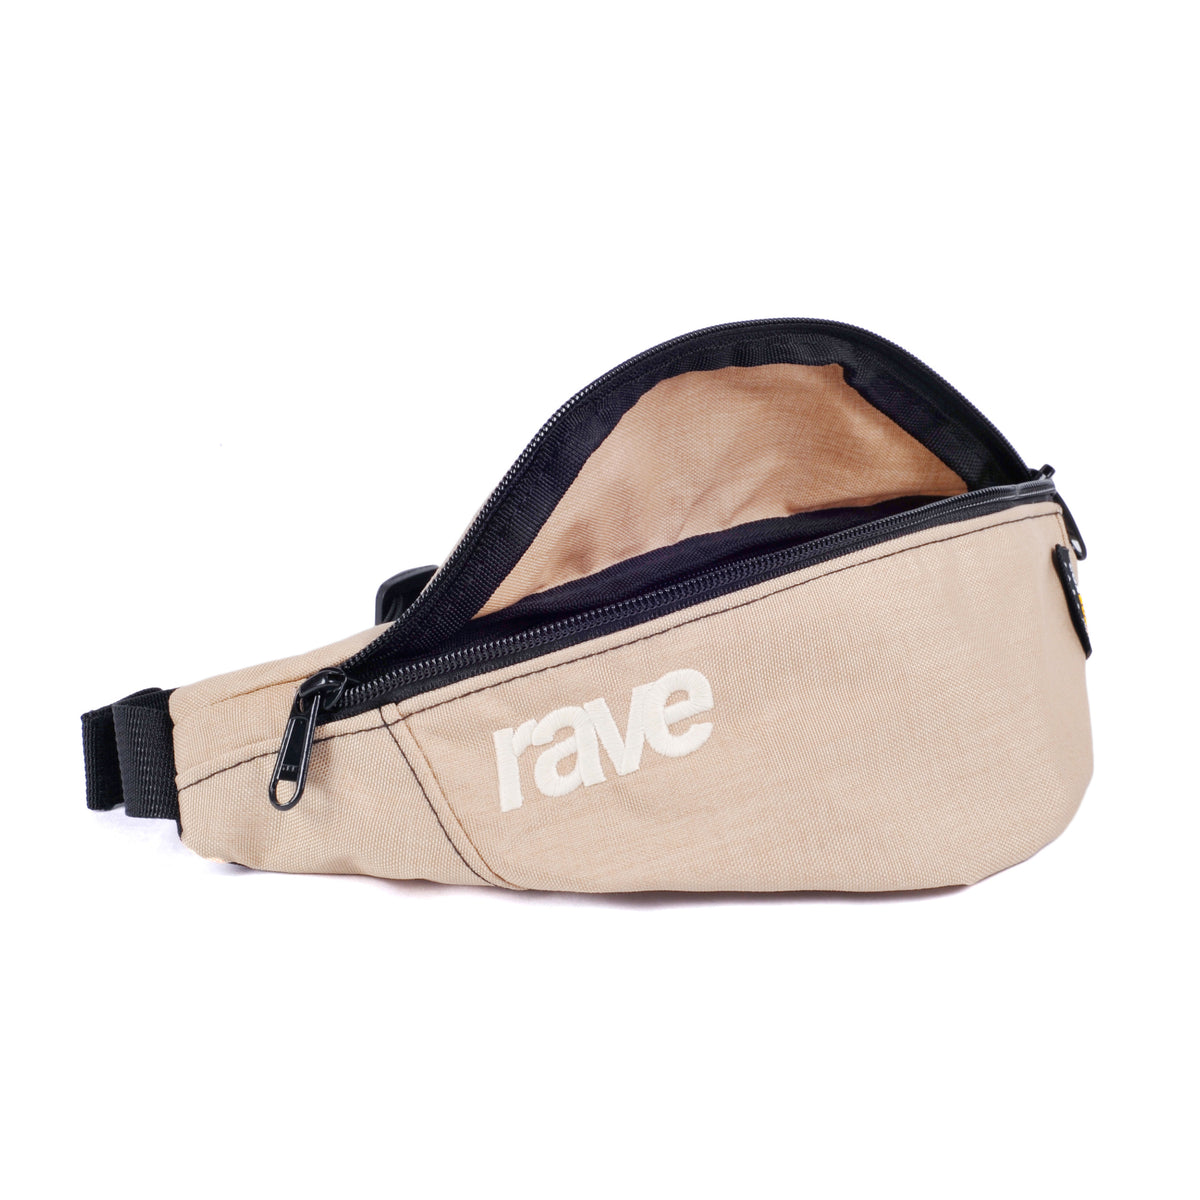 WAIST-PACK sand - RAVE skateboards